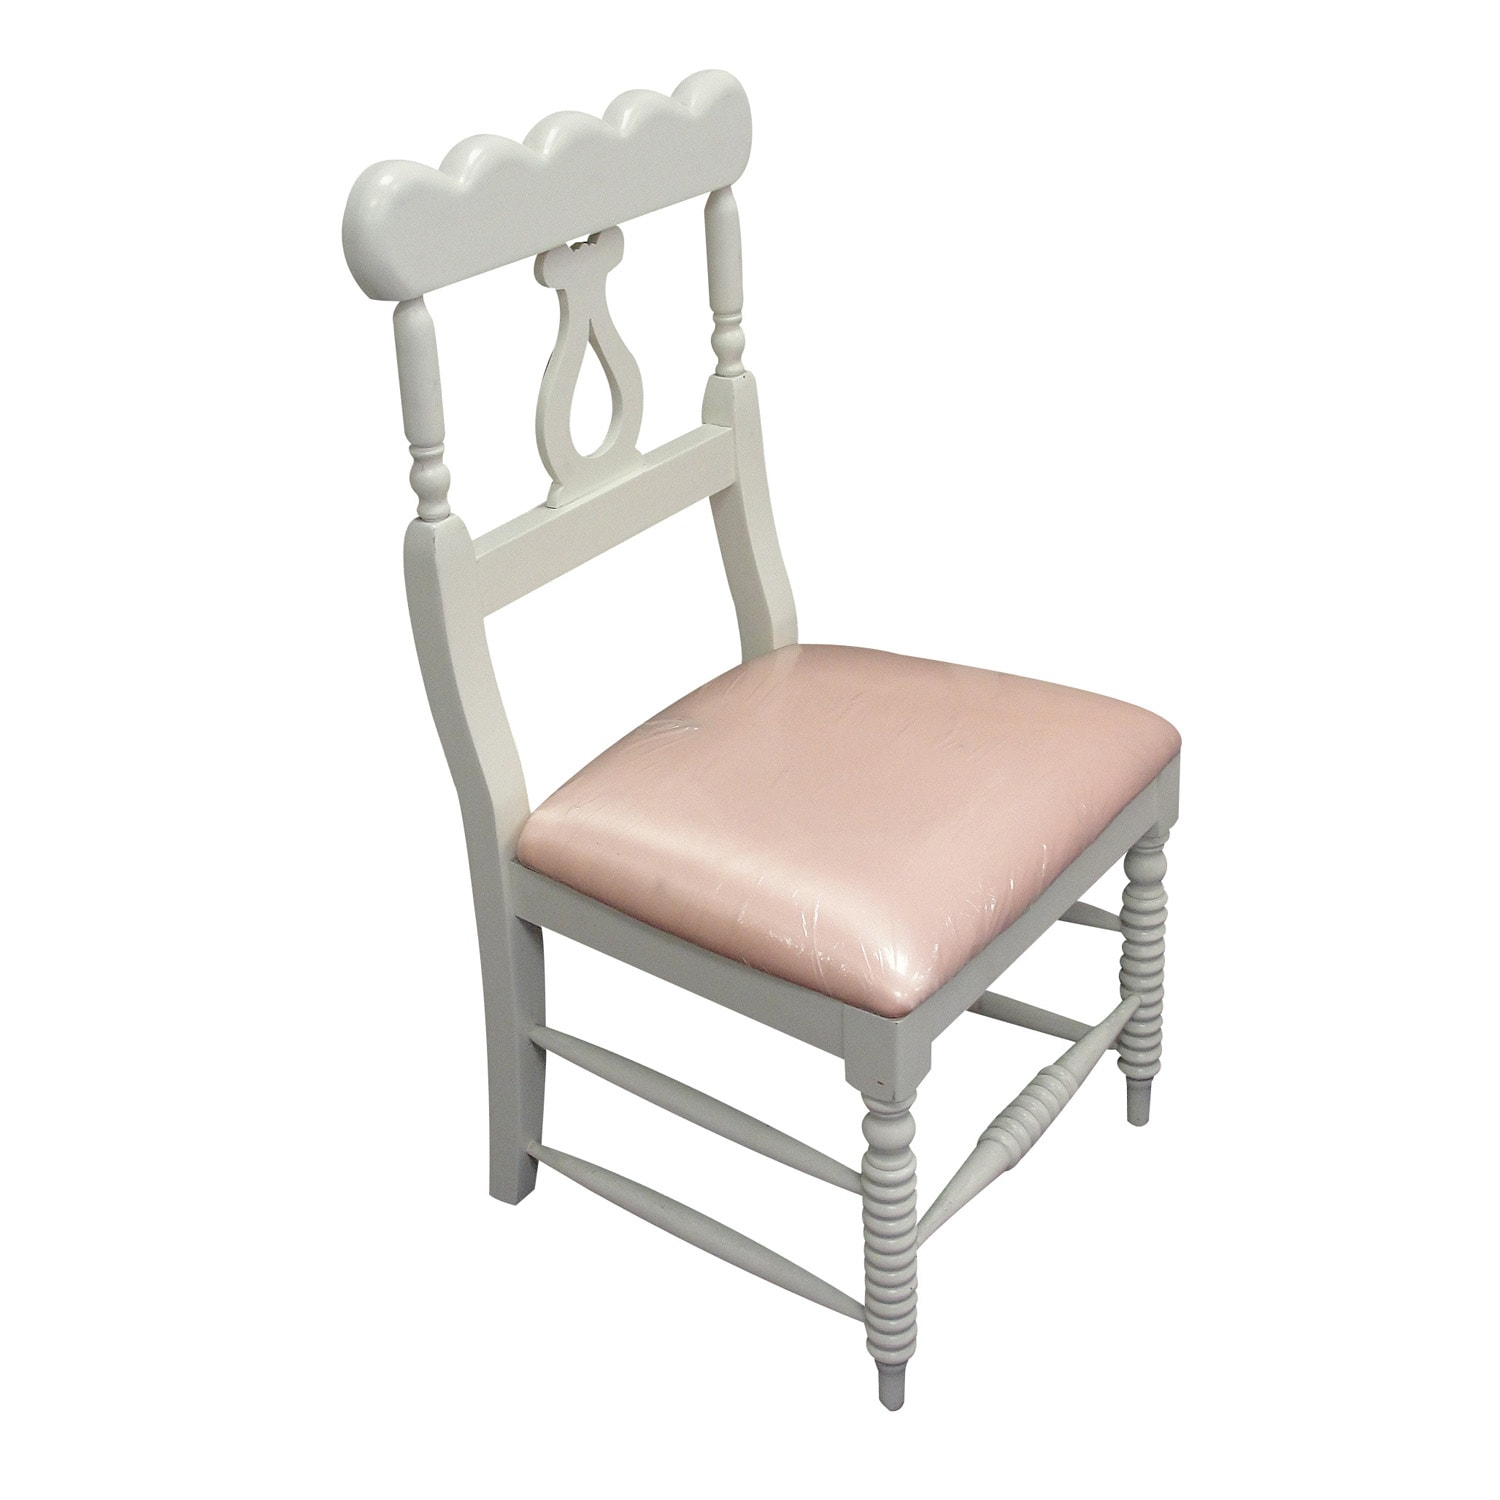 Cream and Peach Crowley Chair